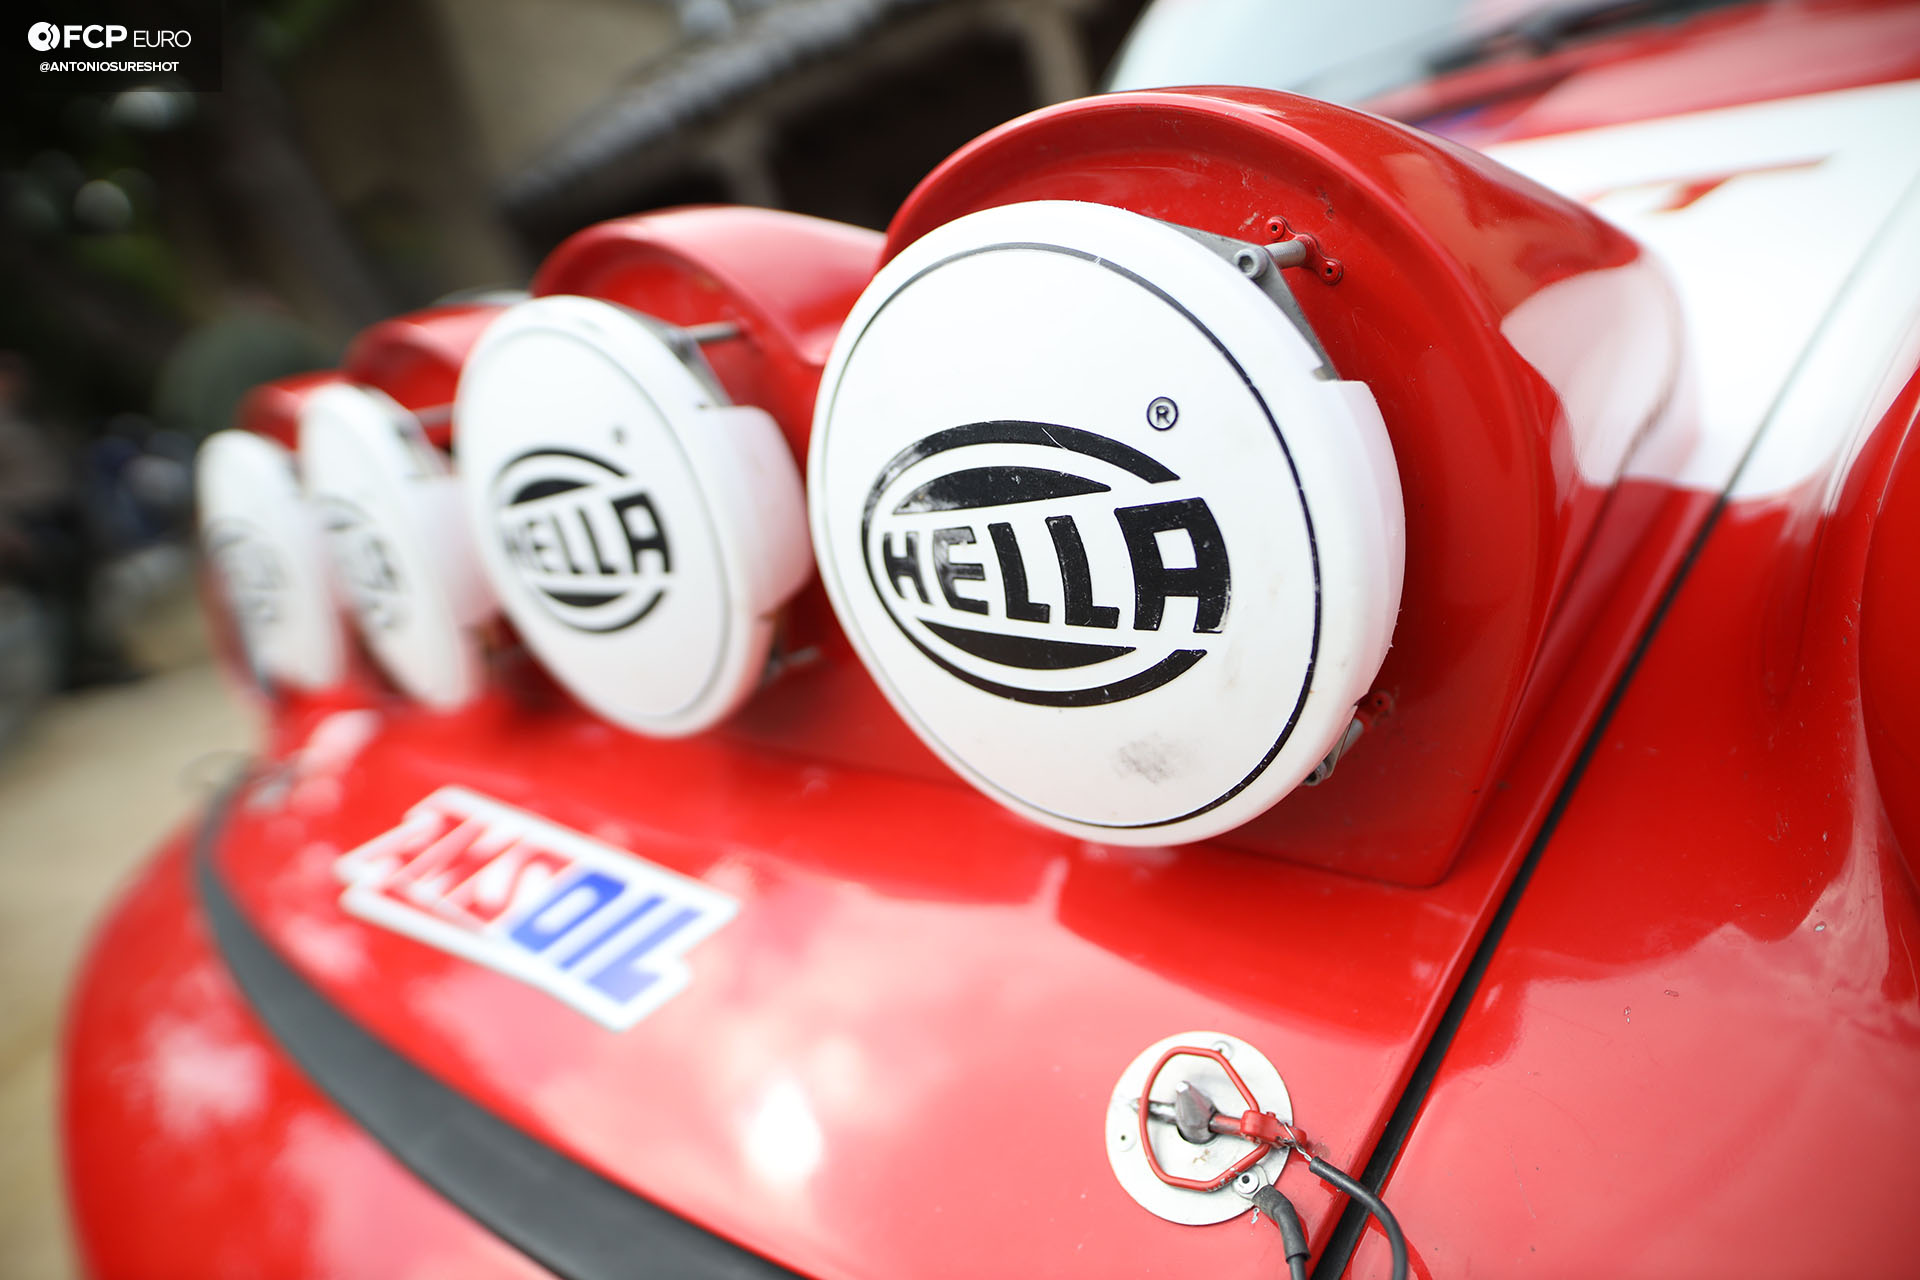 Hella fog lights Safari 964 Rothsport Racing Porsche 911 Rally Car Mexican 1000 Luftgekuhlt Olympus Rally